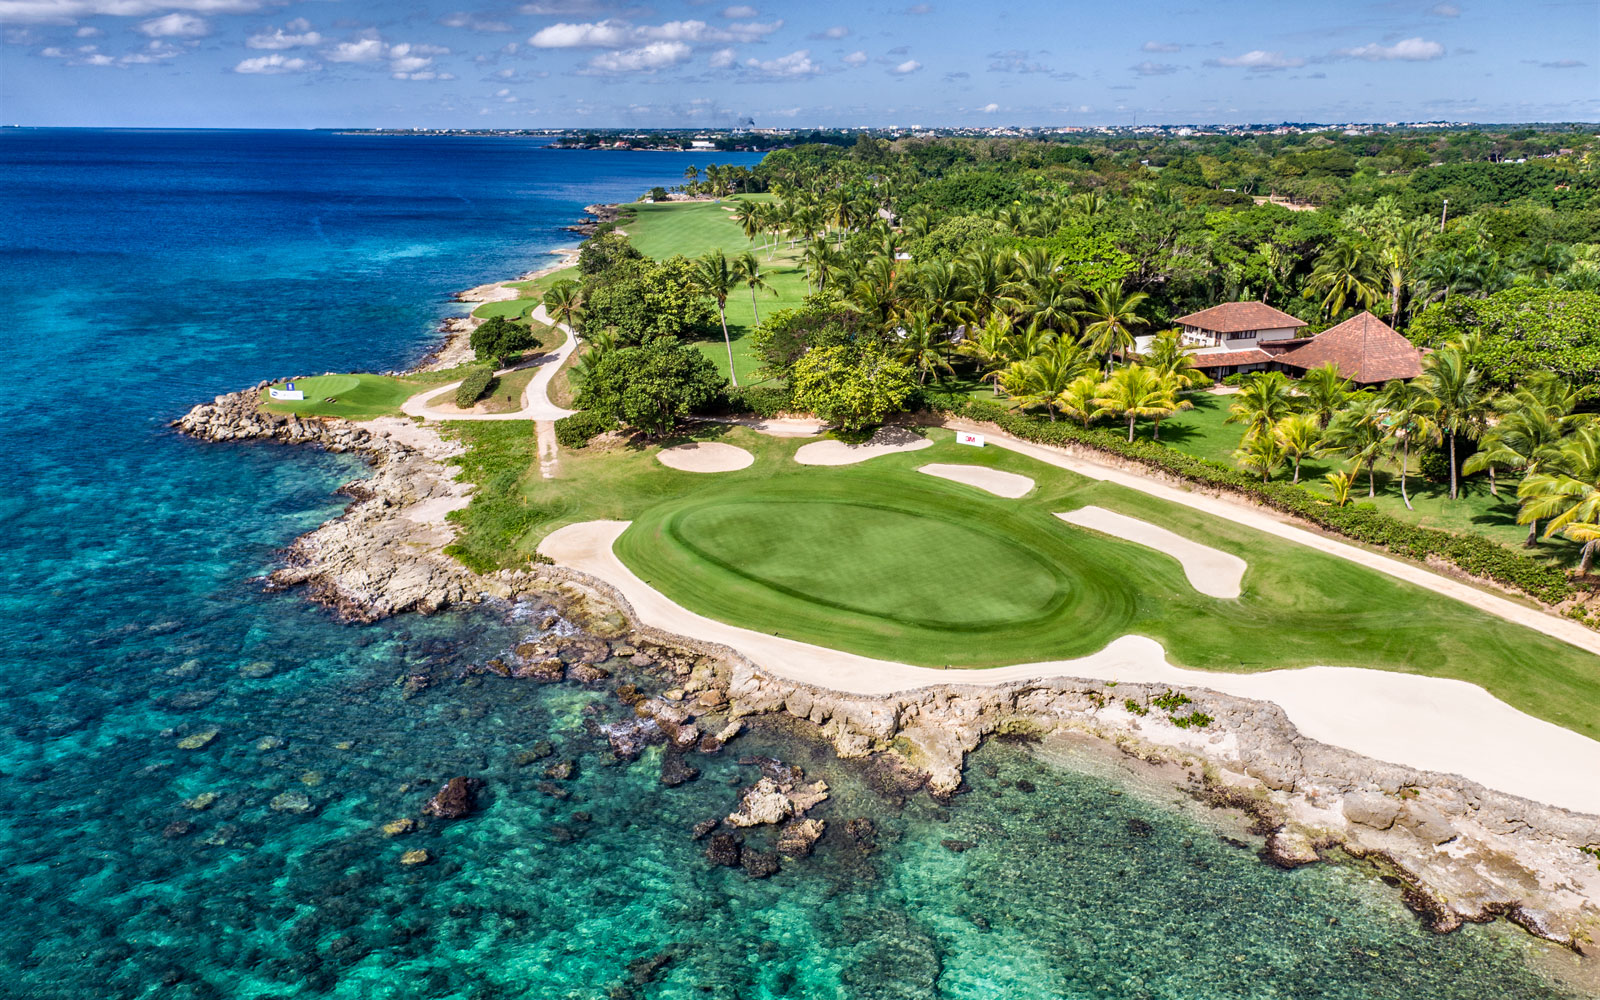 Save 30% on a Three-night Stay at This Luxe, All-inclusive Resort in the Dominican Republic